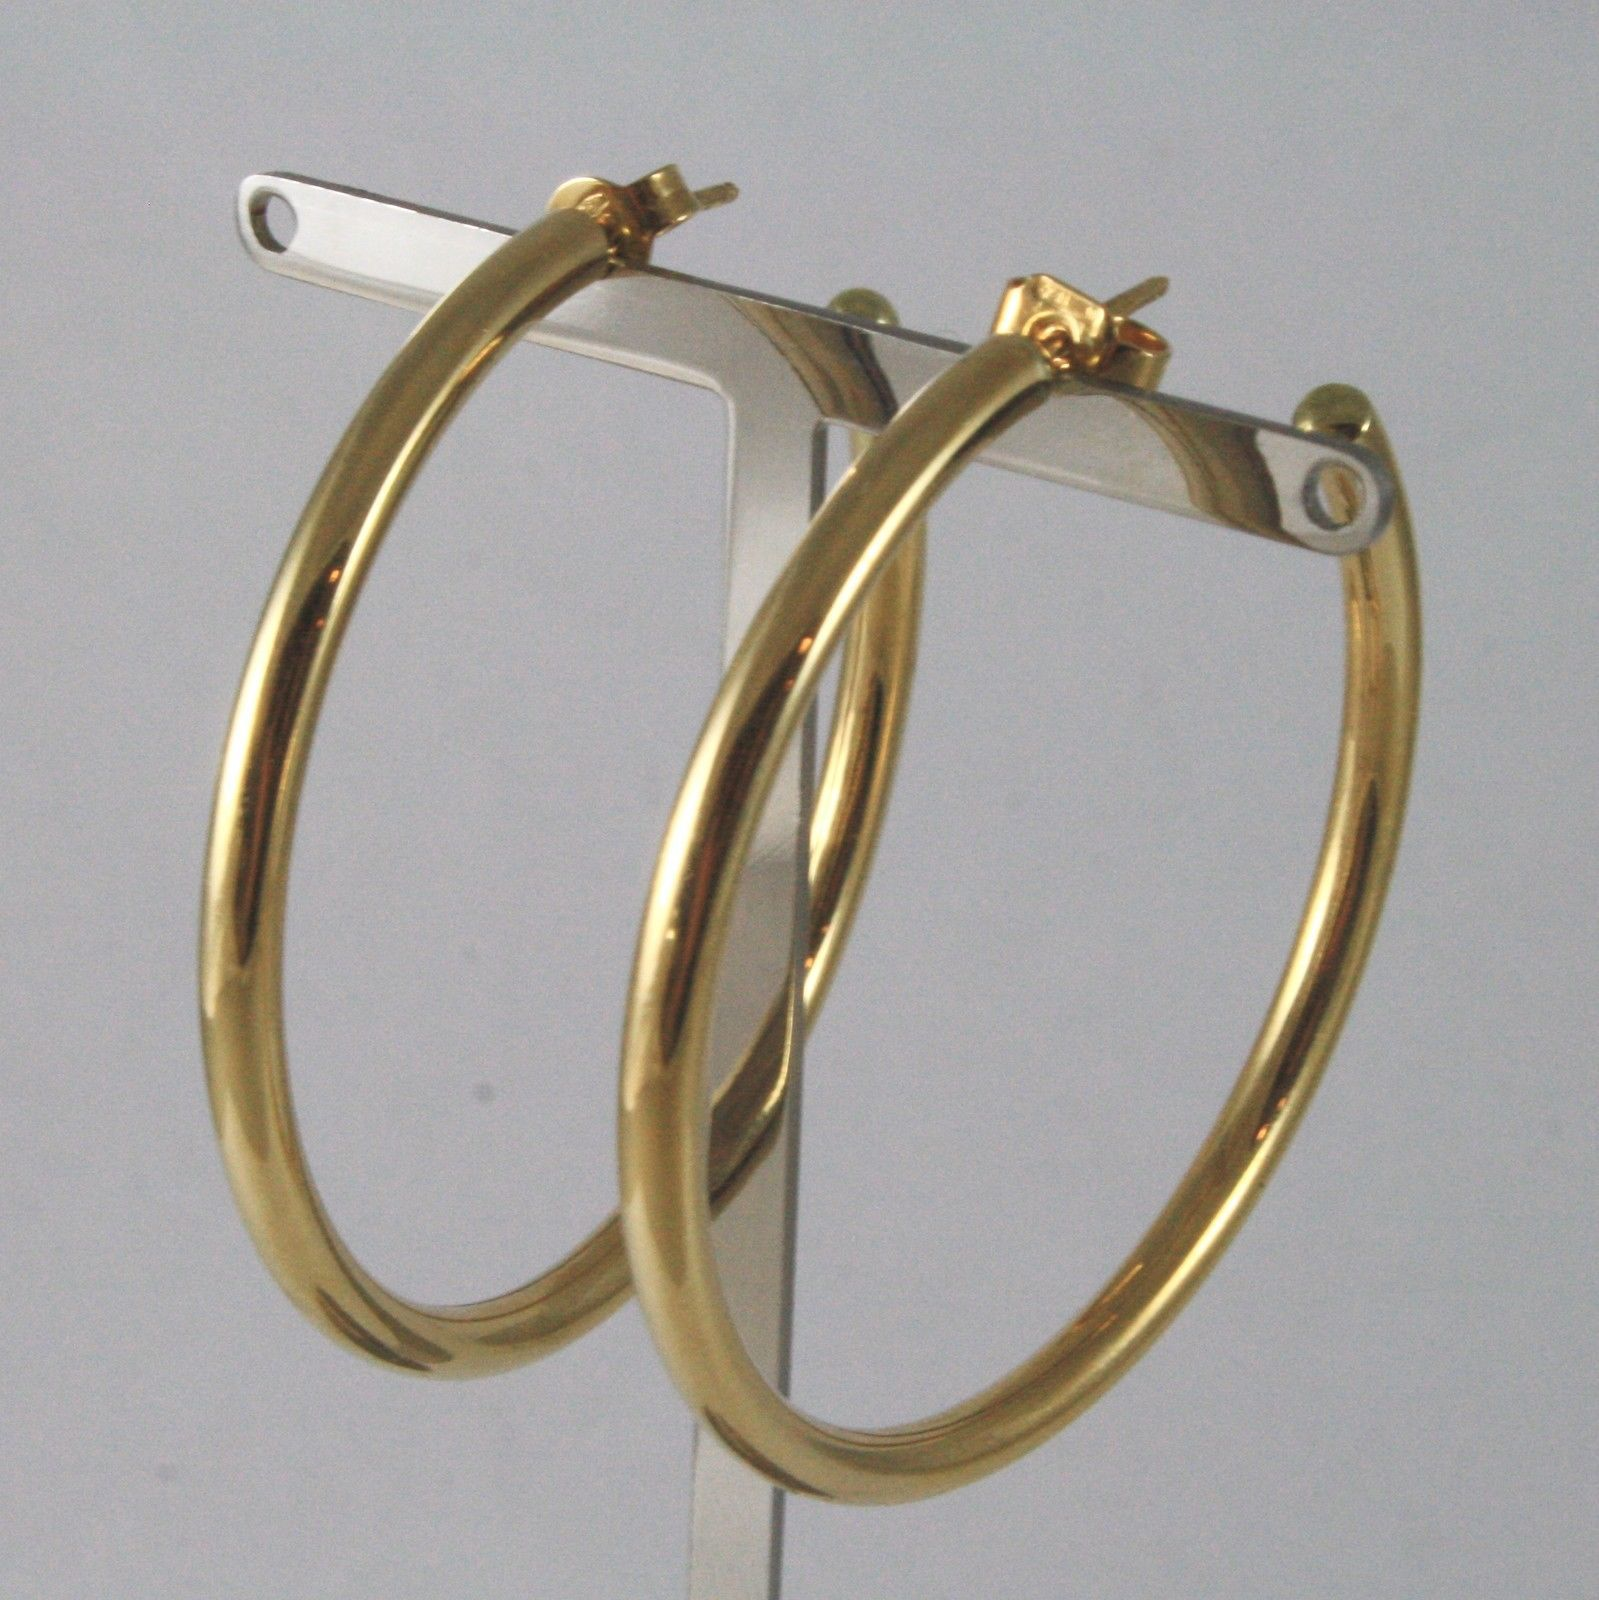 18K SOLID YELLOW GOLD CIRCLE EARRINGS DIAMETER 1,65 IN MADE IN ITALY 18K